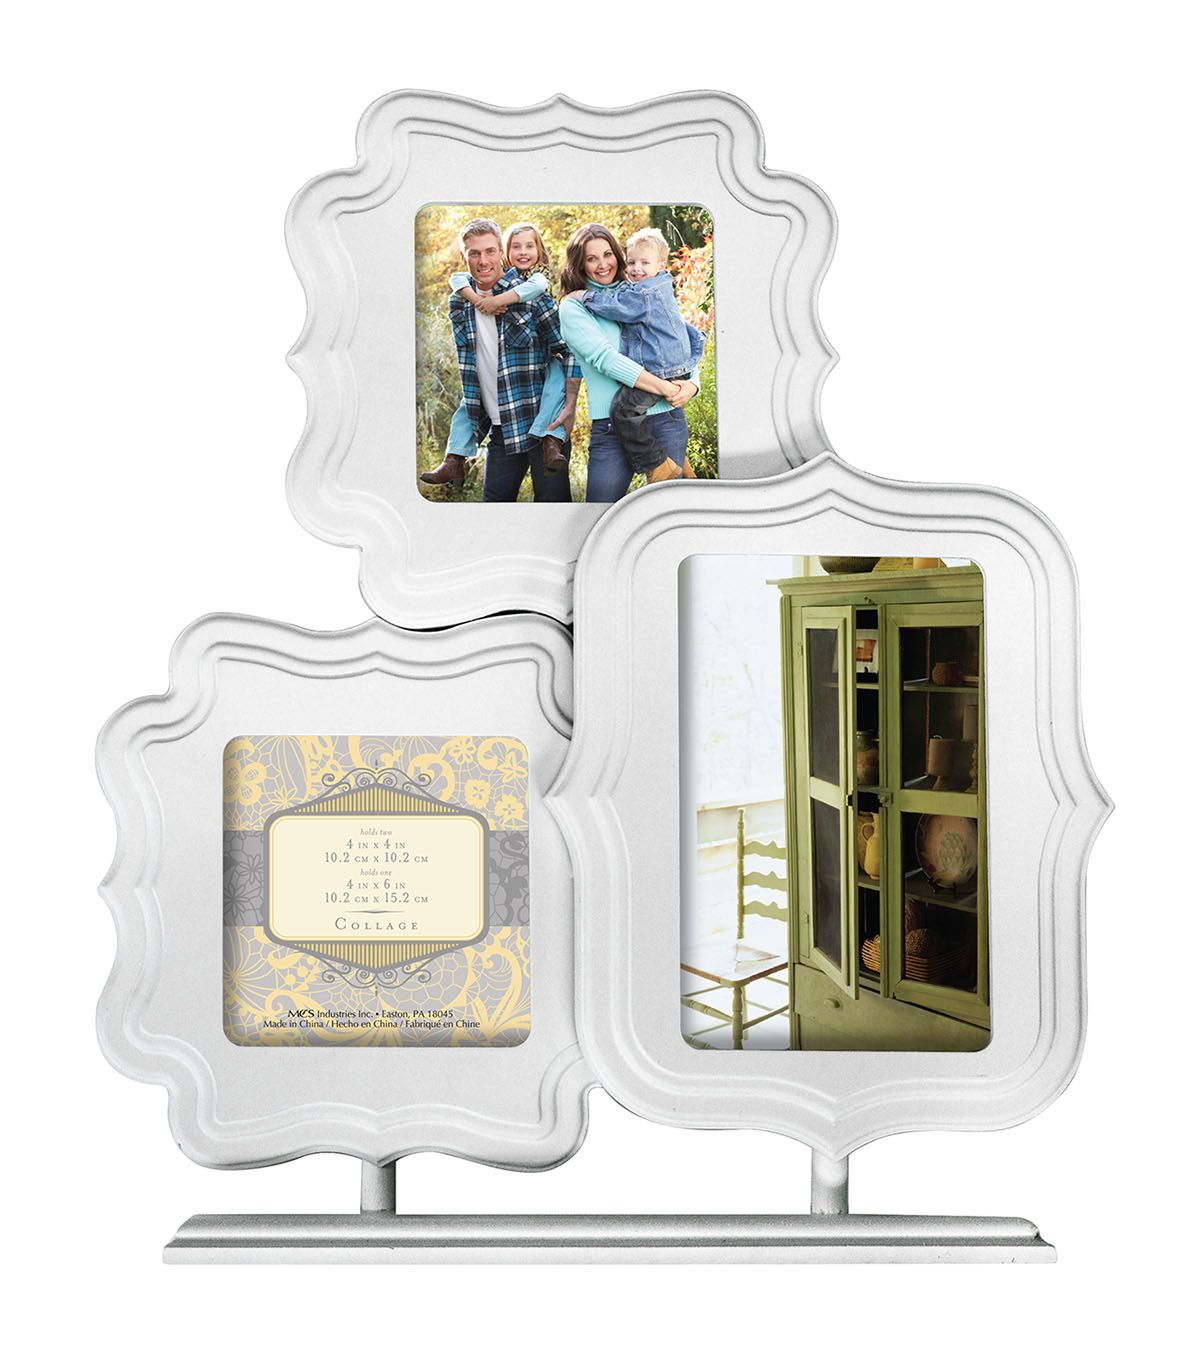 Tabletop Frame 4X6 - Collage White | Collage photo, Tabletop and ...